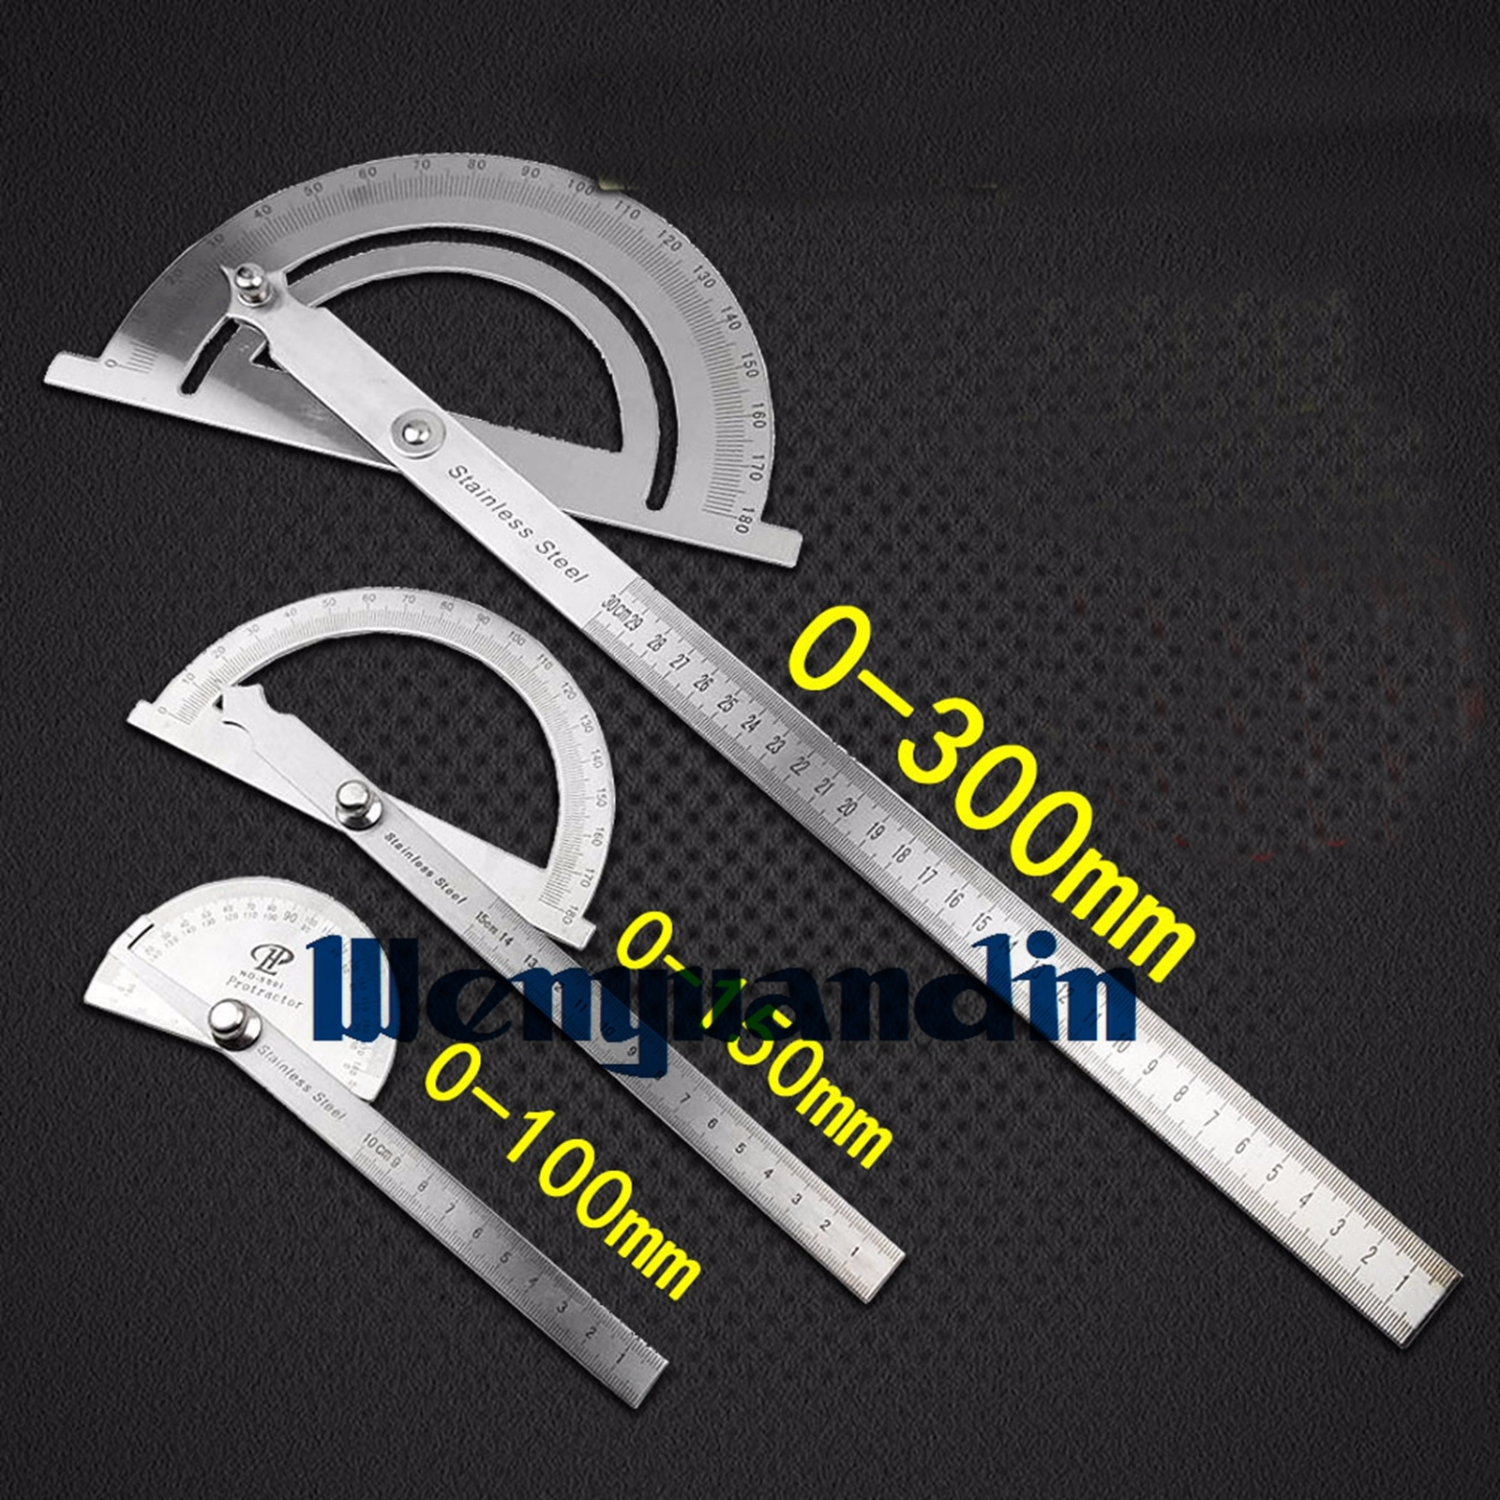 Business, Office & Industrial Hand Tools Ruler Measuring Tool ...